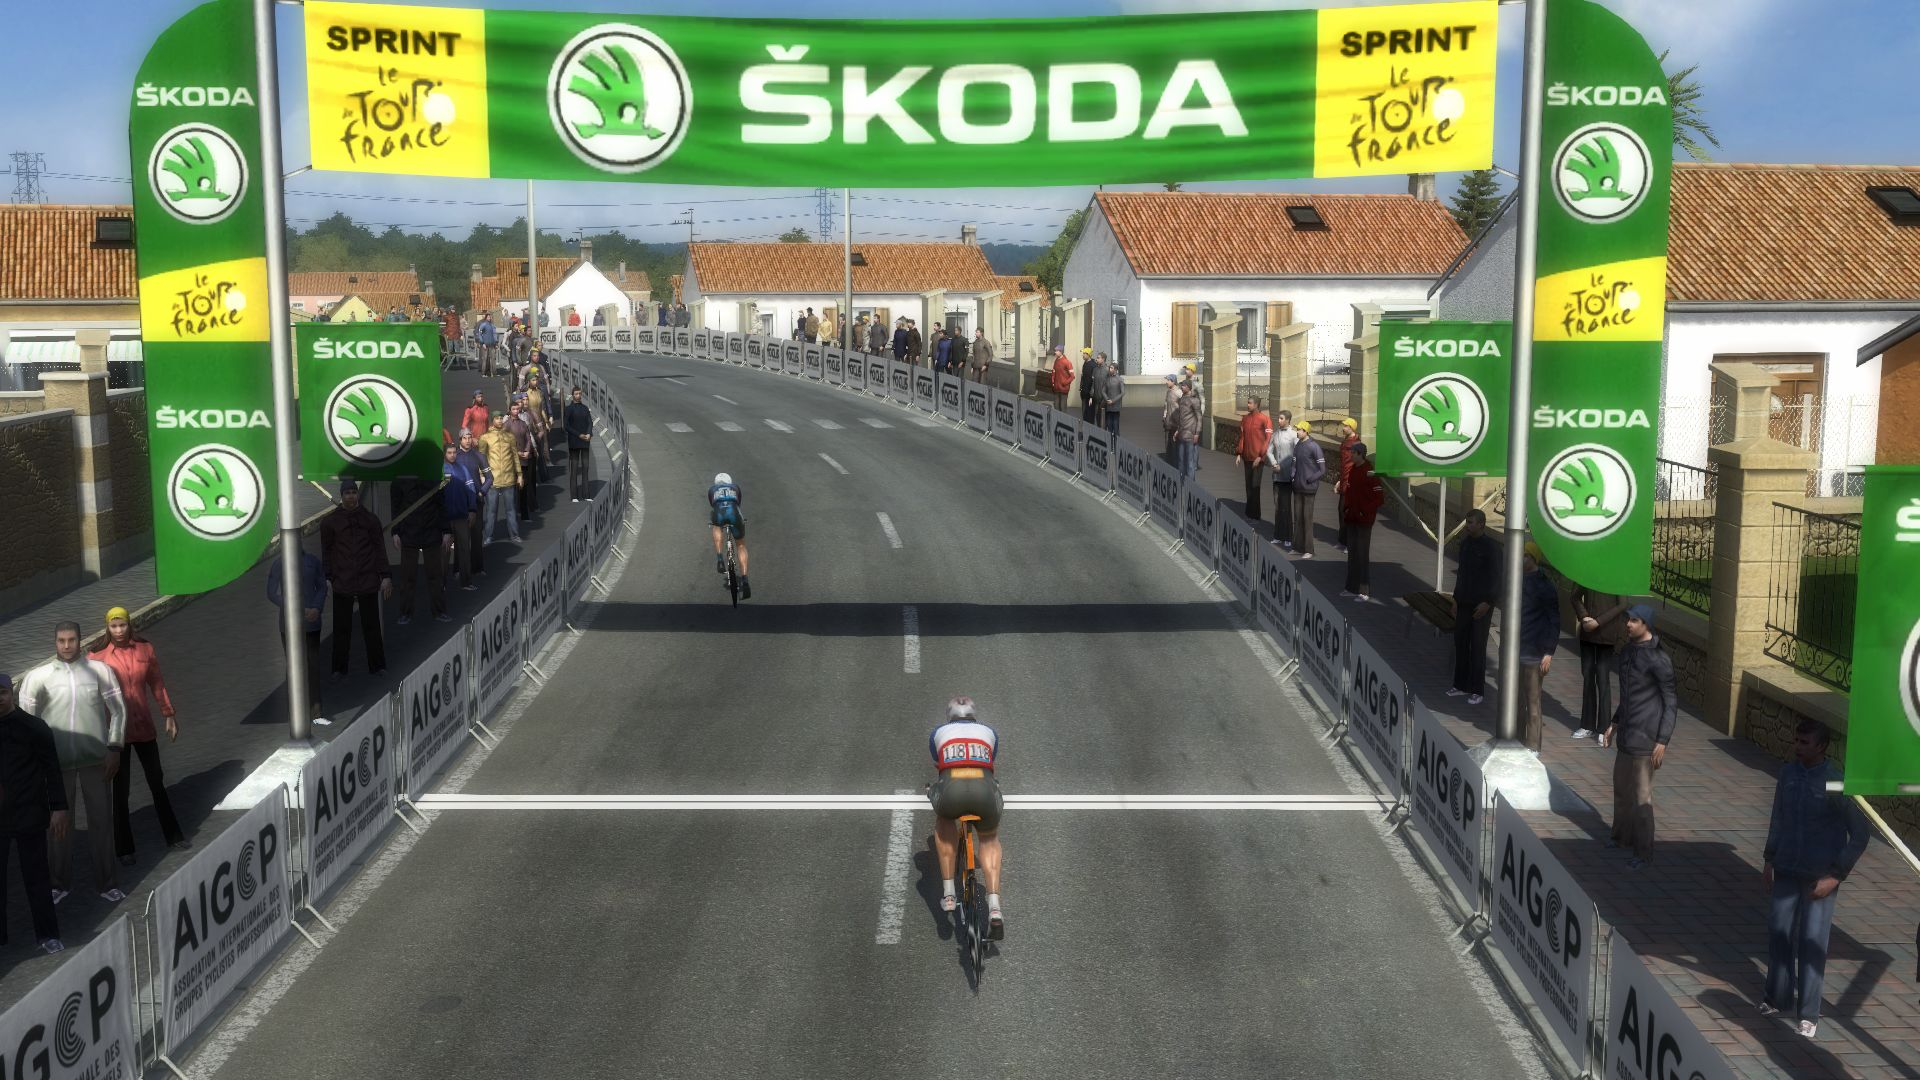 pcmdaily.com/images/mg/2019/Races/HC/Slovenie/mg19_slo_s04_10.jpg